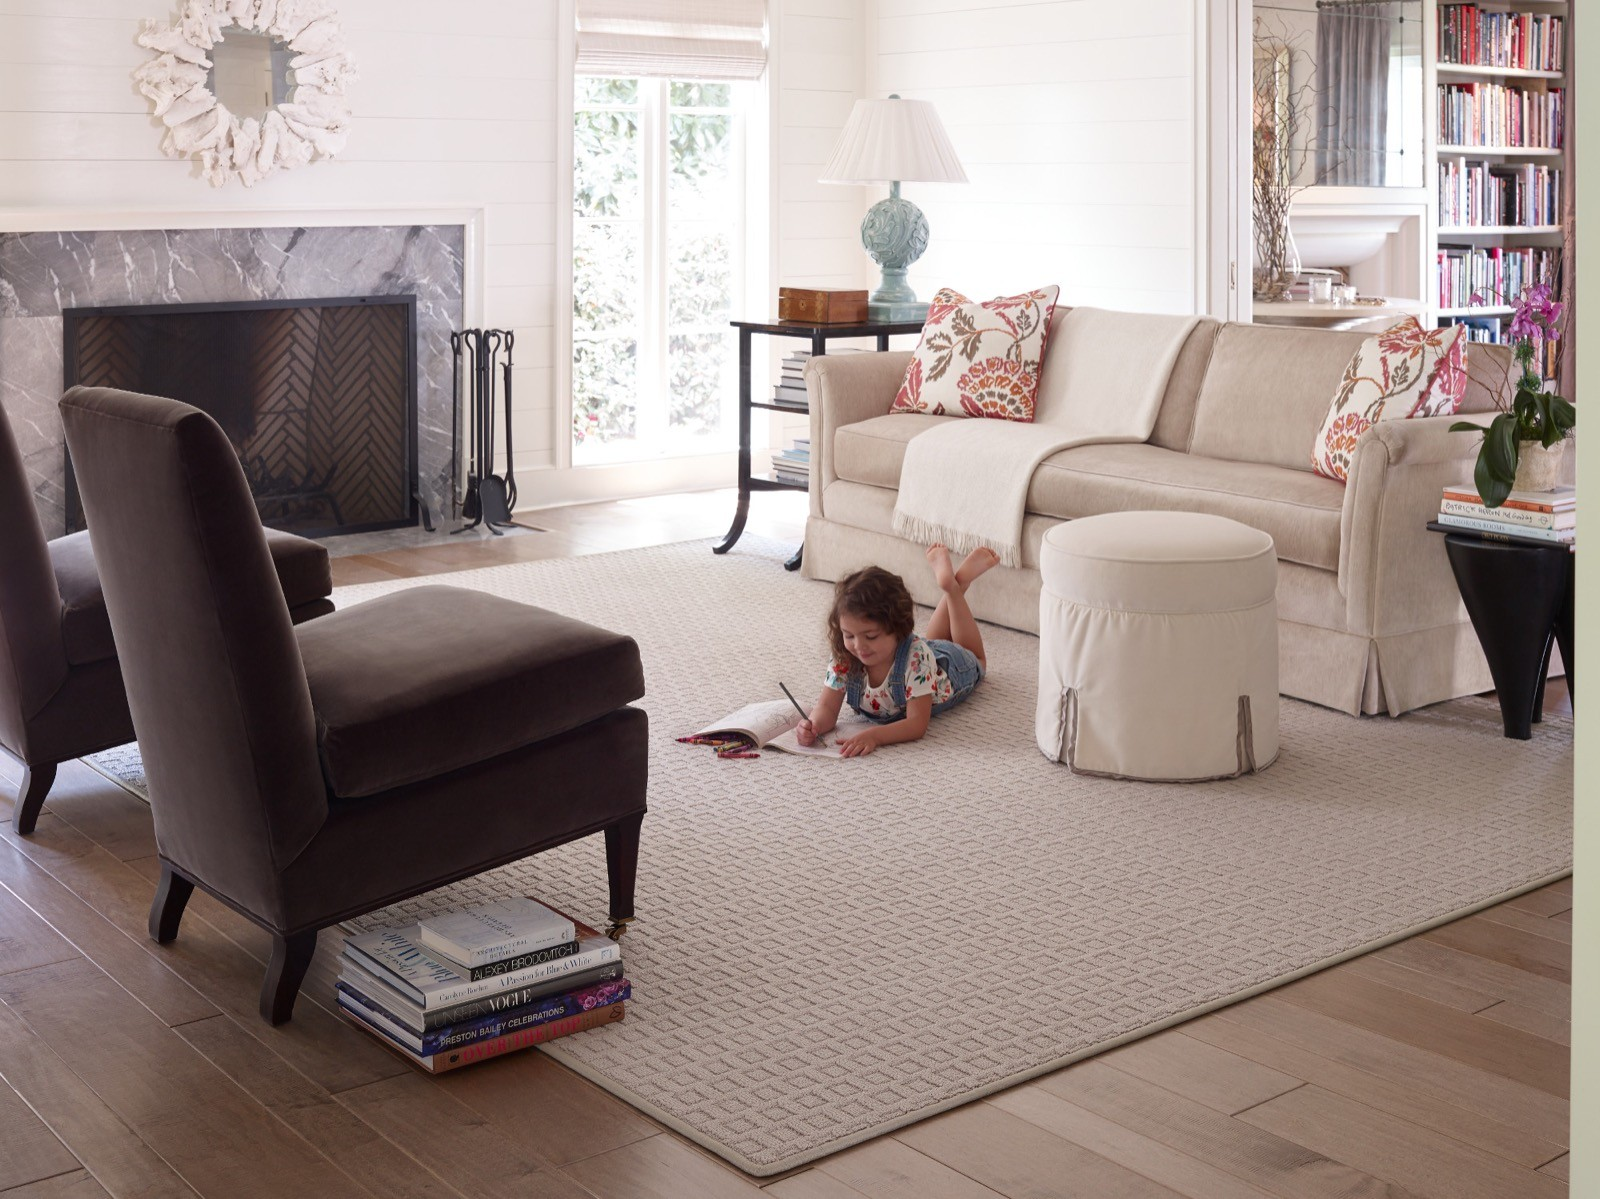 Kid on Carpet | Shelley Carpets